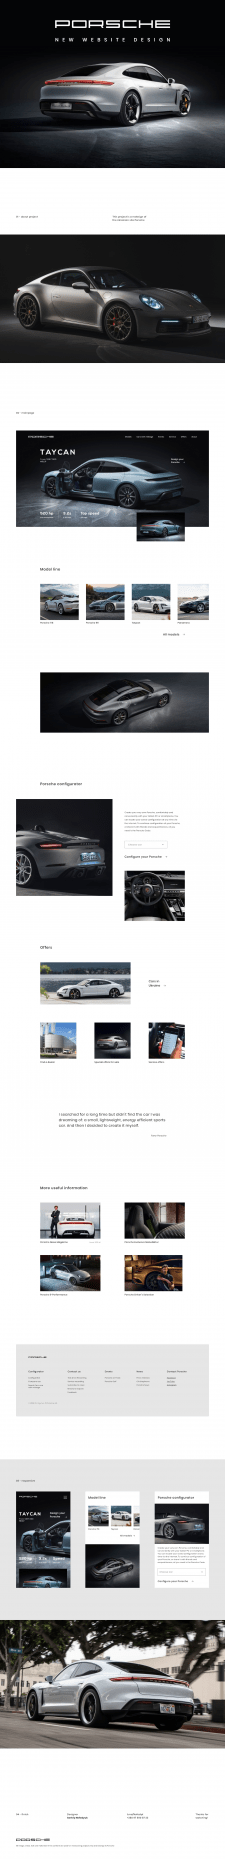 Porsche - car manufacturer website redesign